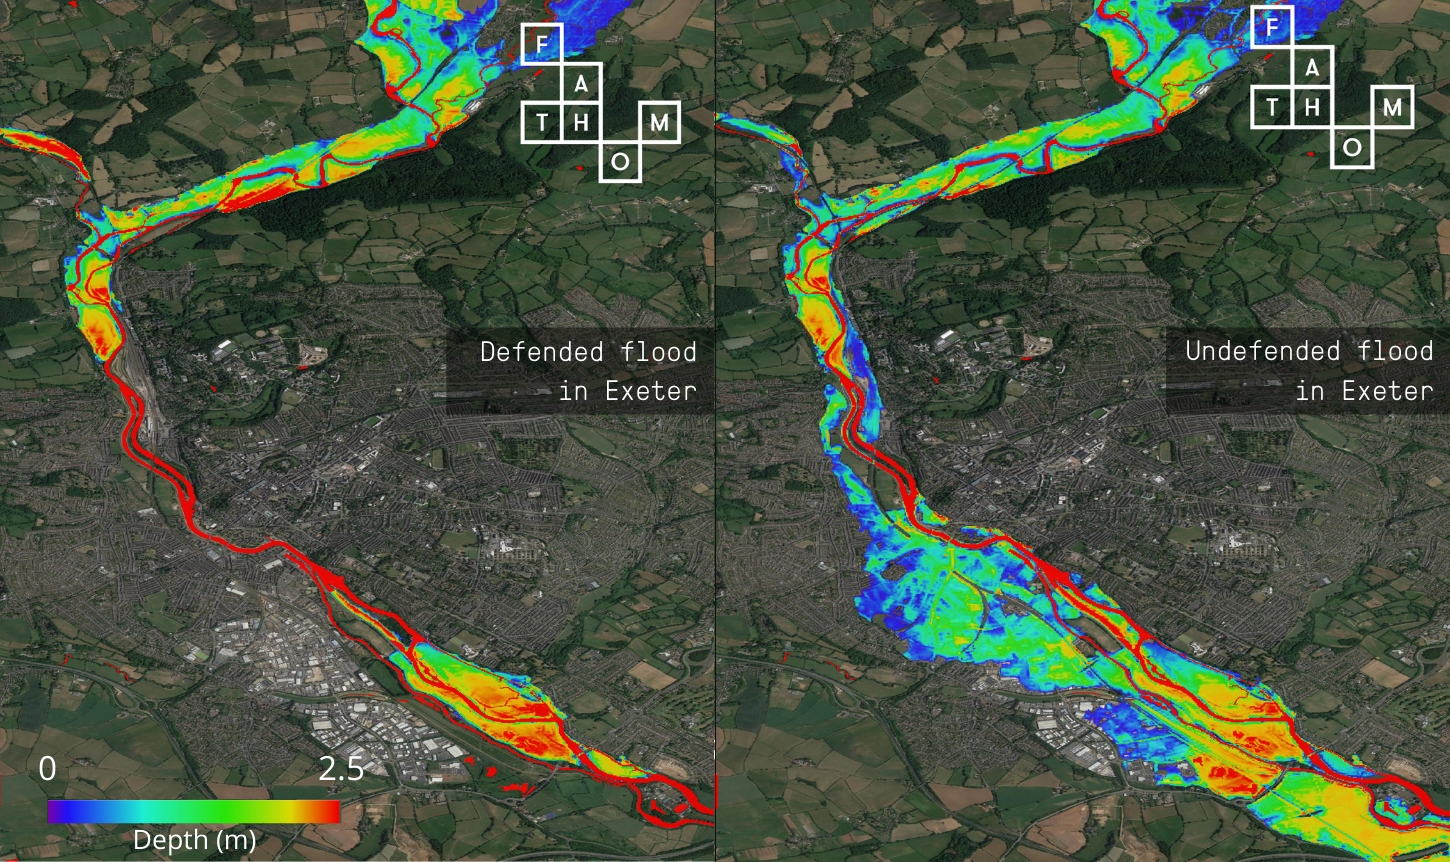 Fathom maps 100% of flood defences. Without defences in place, flood risk drastically increases